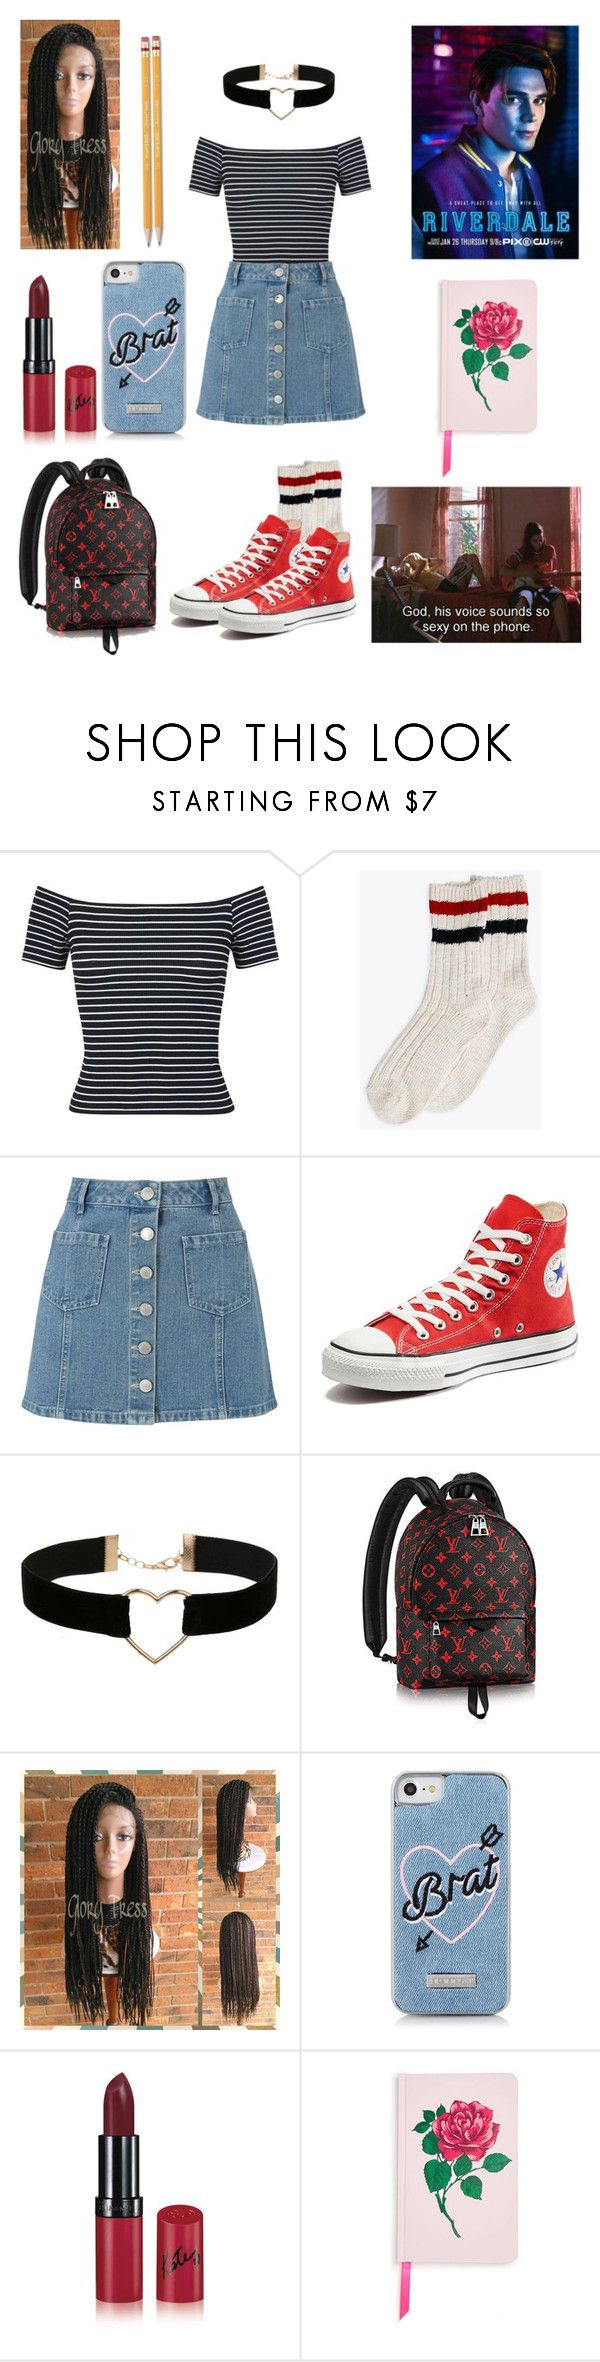 """""""Meeting Archie Andrews [Riverdale]"""" by aurejuanbaston ❤ liked on Polyvore featuring Miss Selfridge, Converse, Rimmel, ban.do and Paper Mate"""